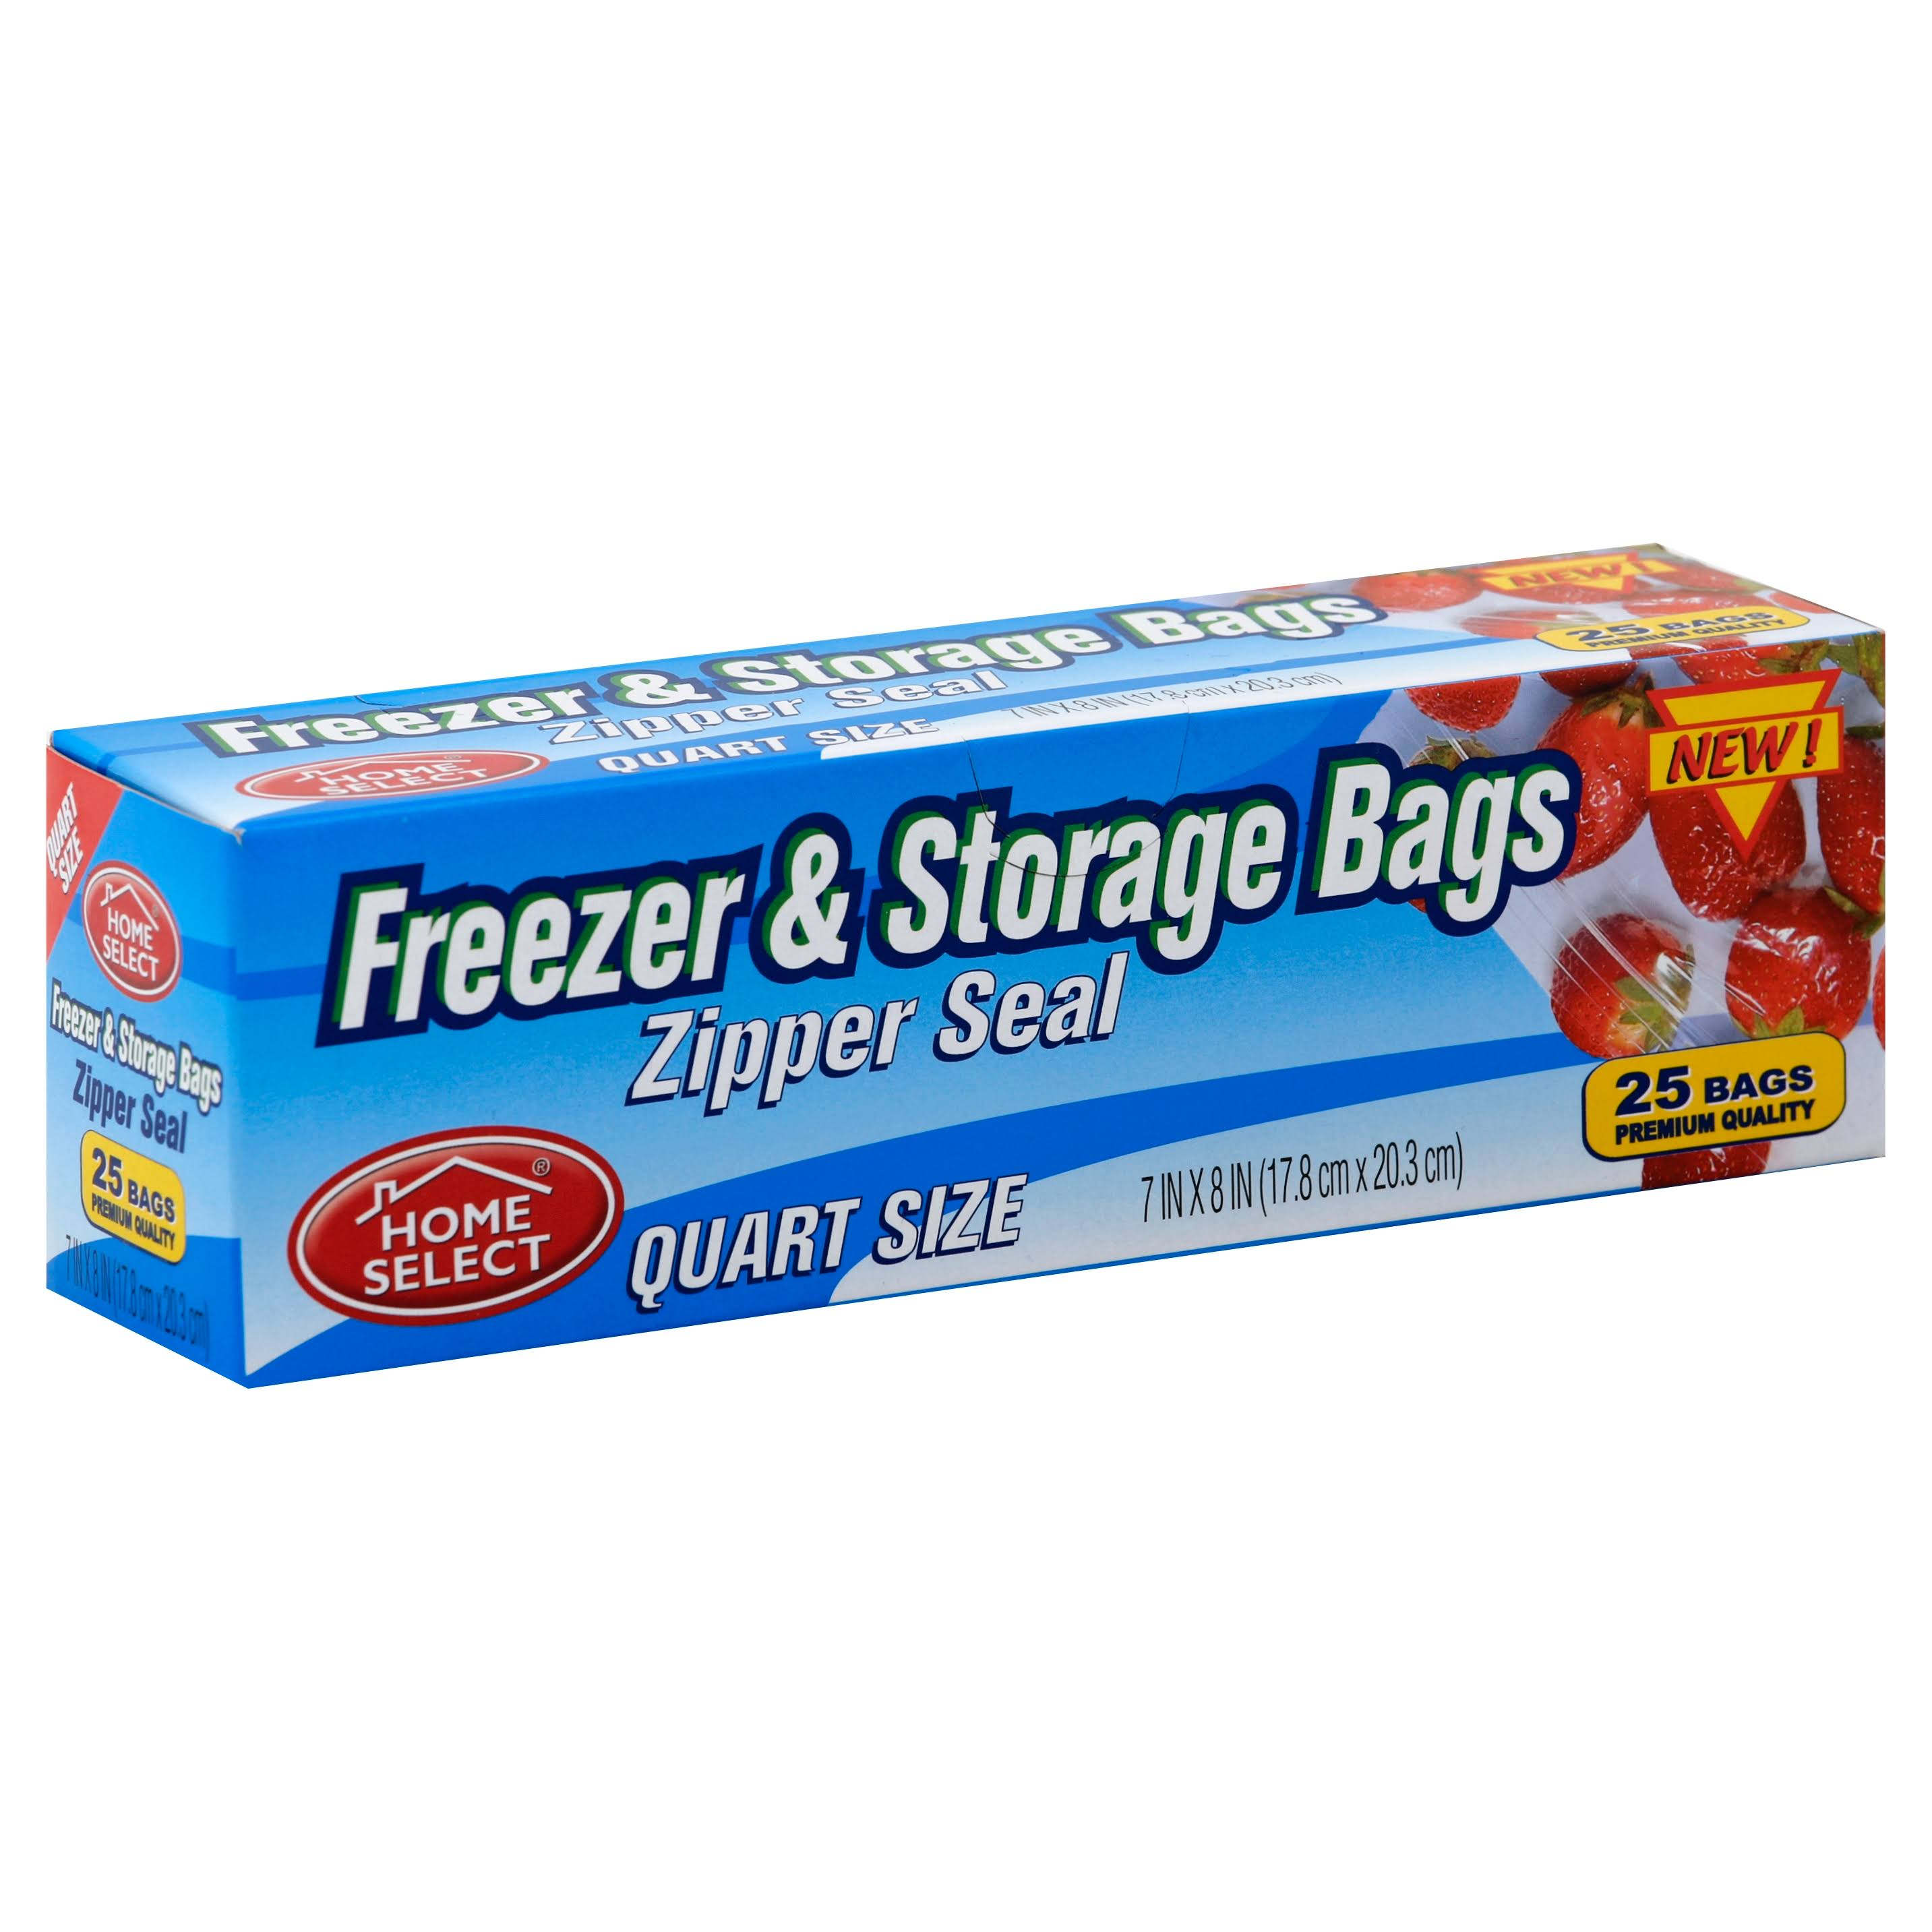 Home Select Freezer & Storage Bags, Zipper Seal, Quart Size - 25 bags